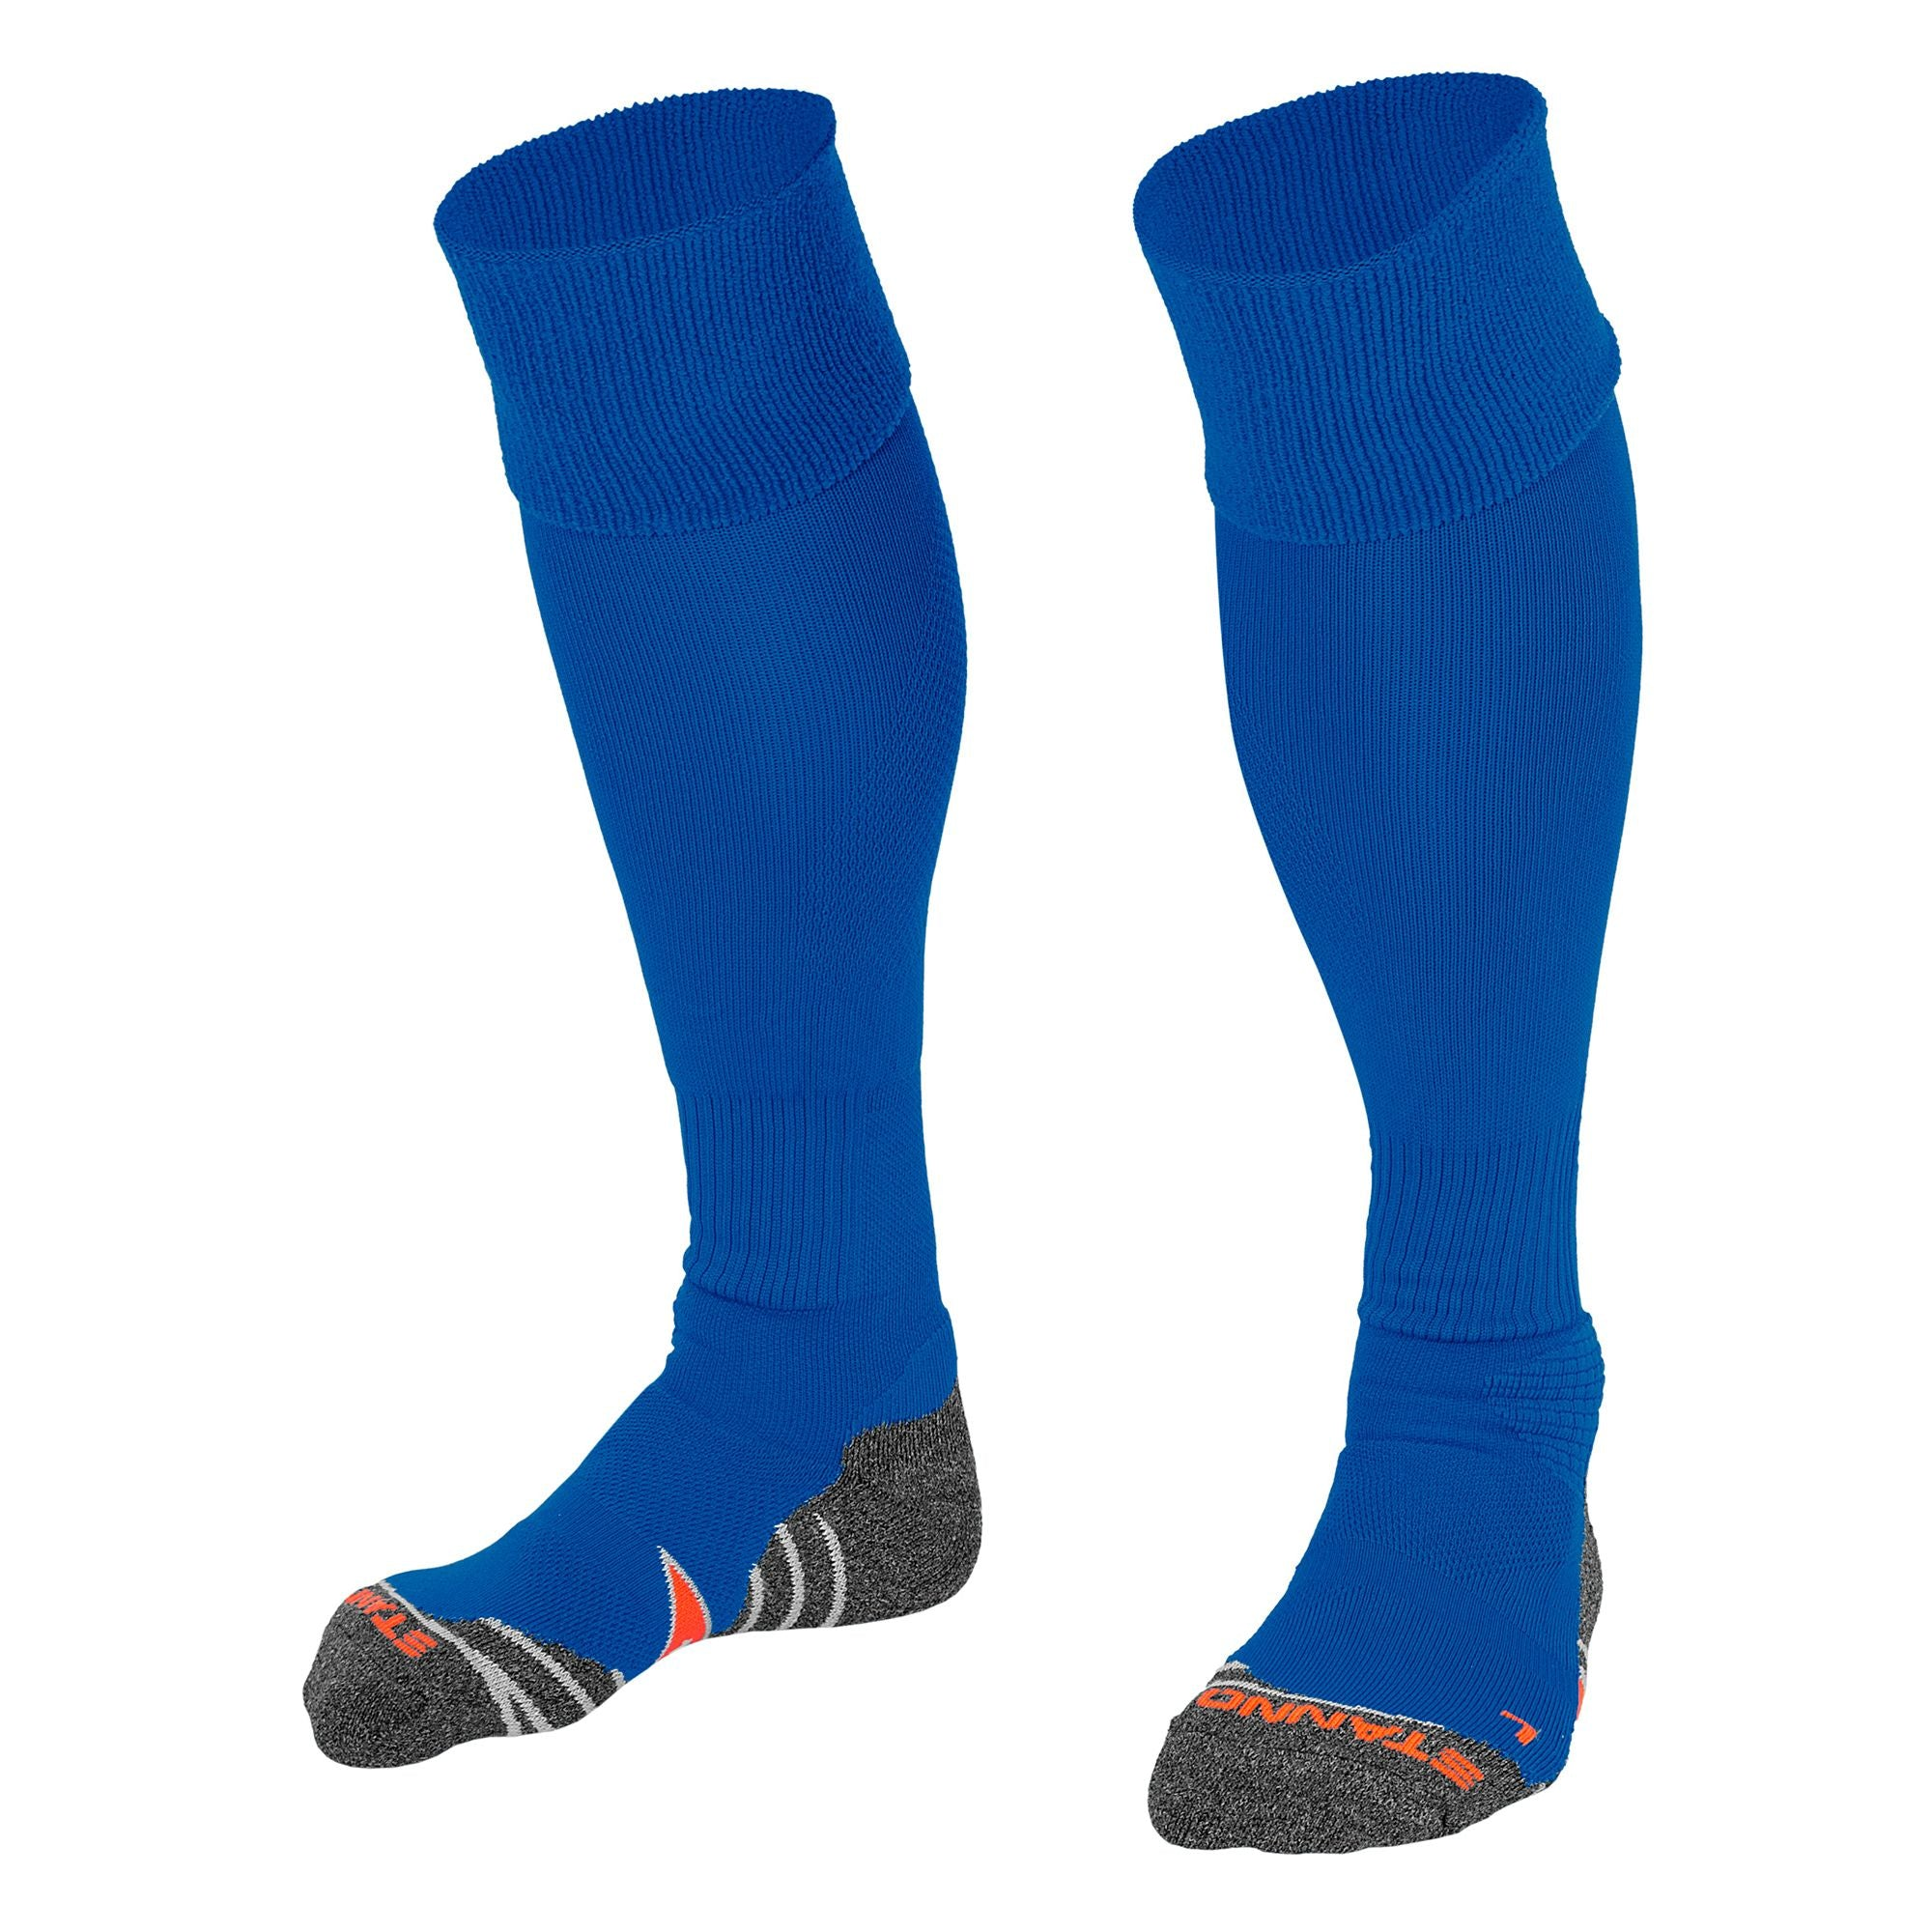 Stanno Uni Sock II football sock in royal blue with grey, white and orange sole